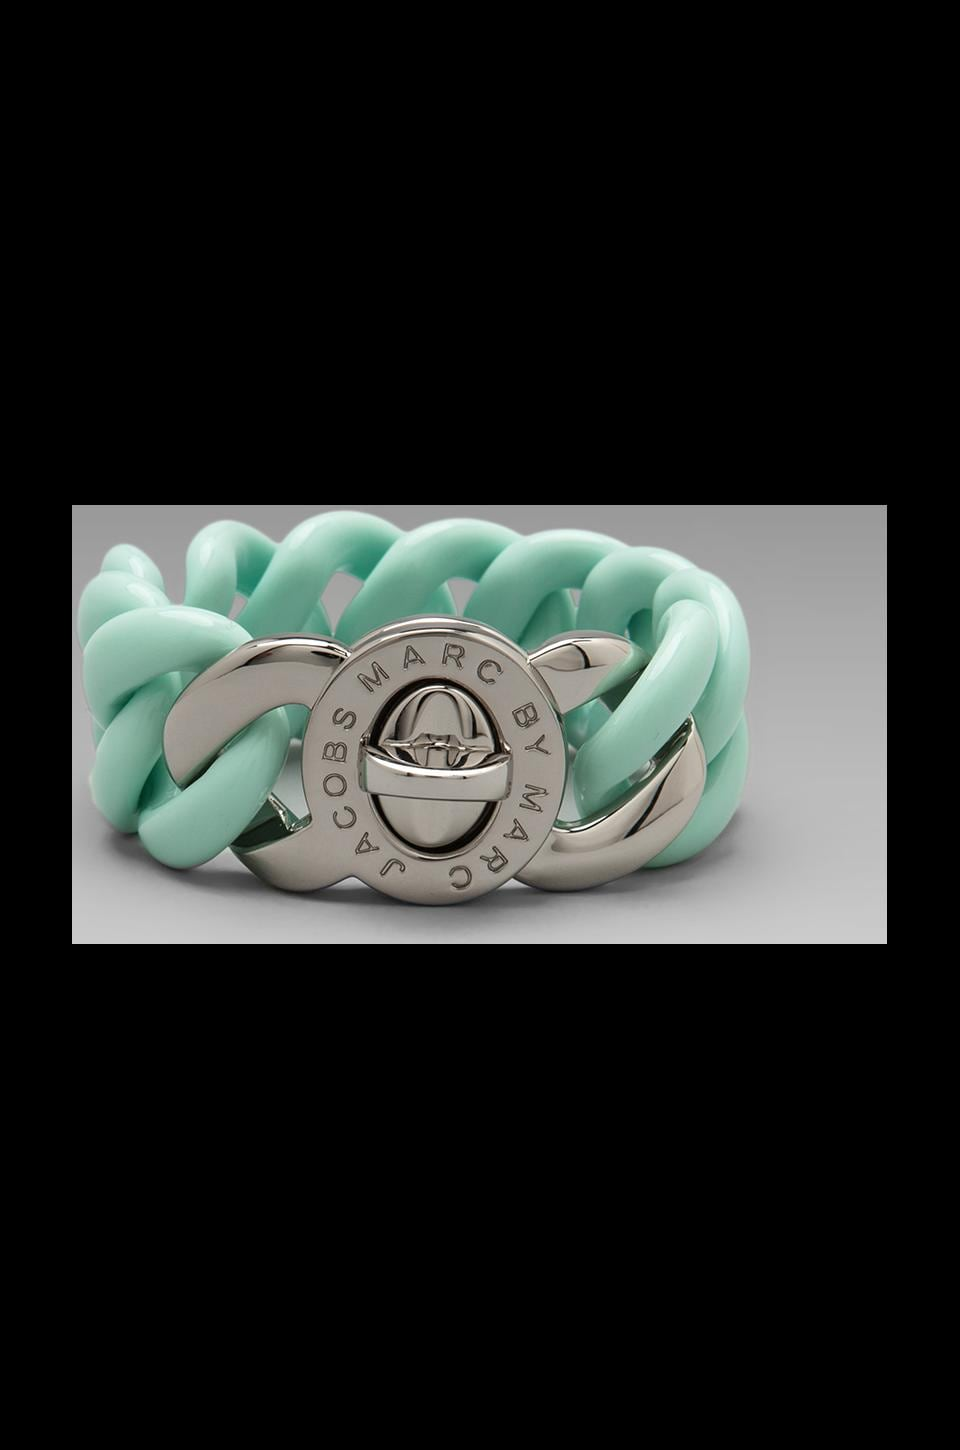 Marc by Marc Jacobs Key Items Small Candy Turnlock Bracelet in Glacial Blue (Argento)